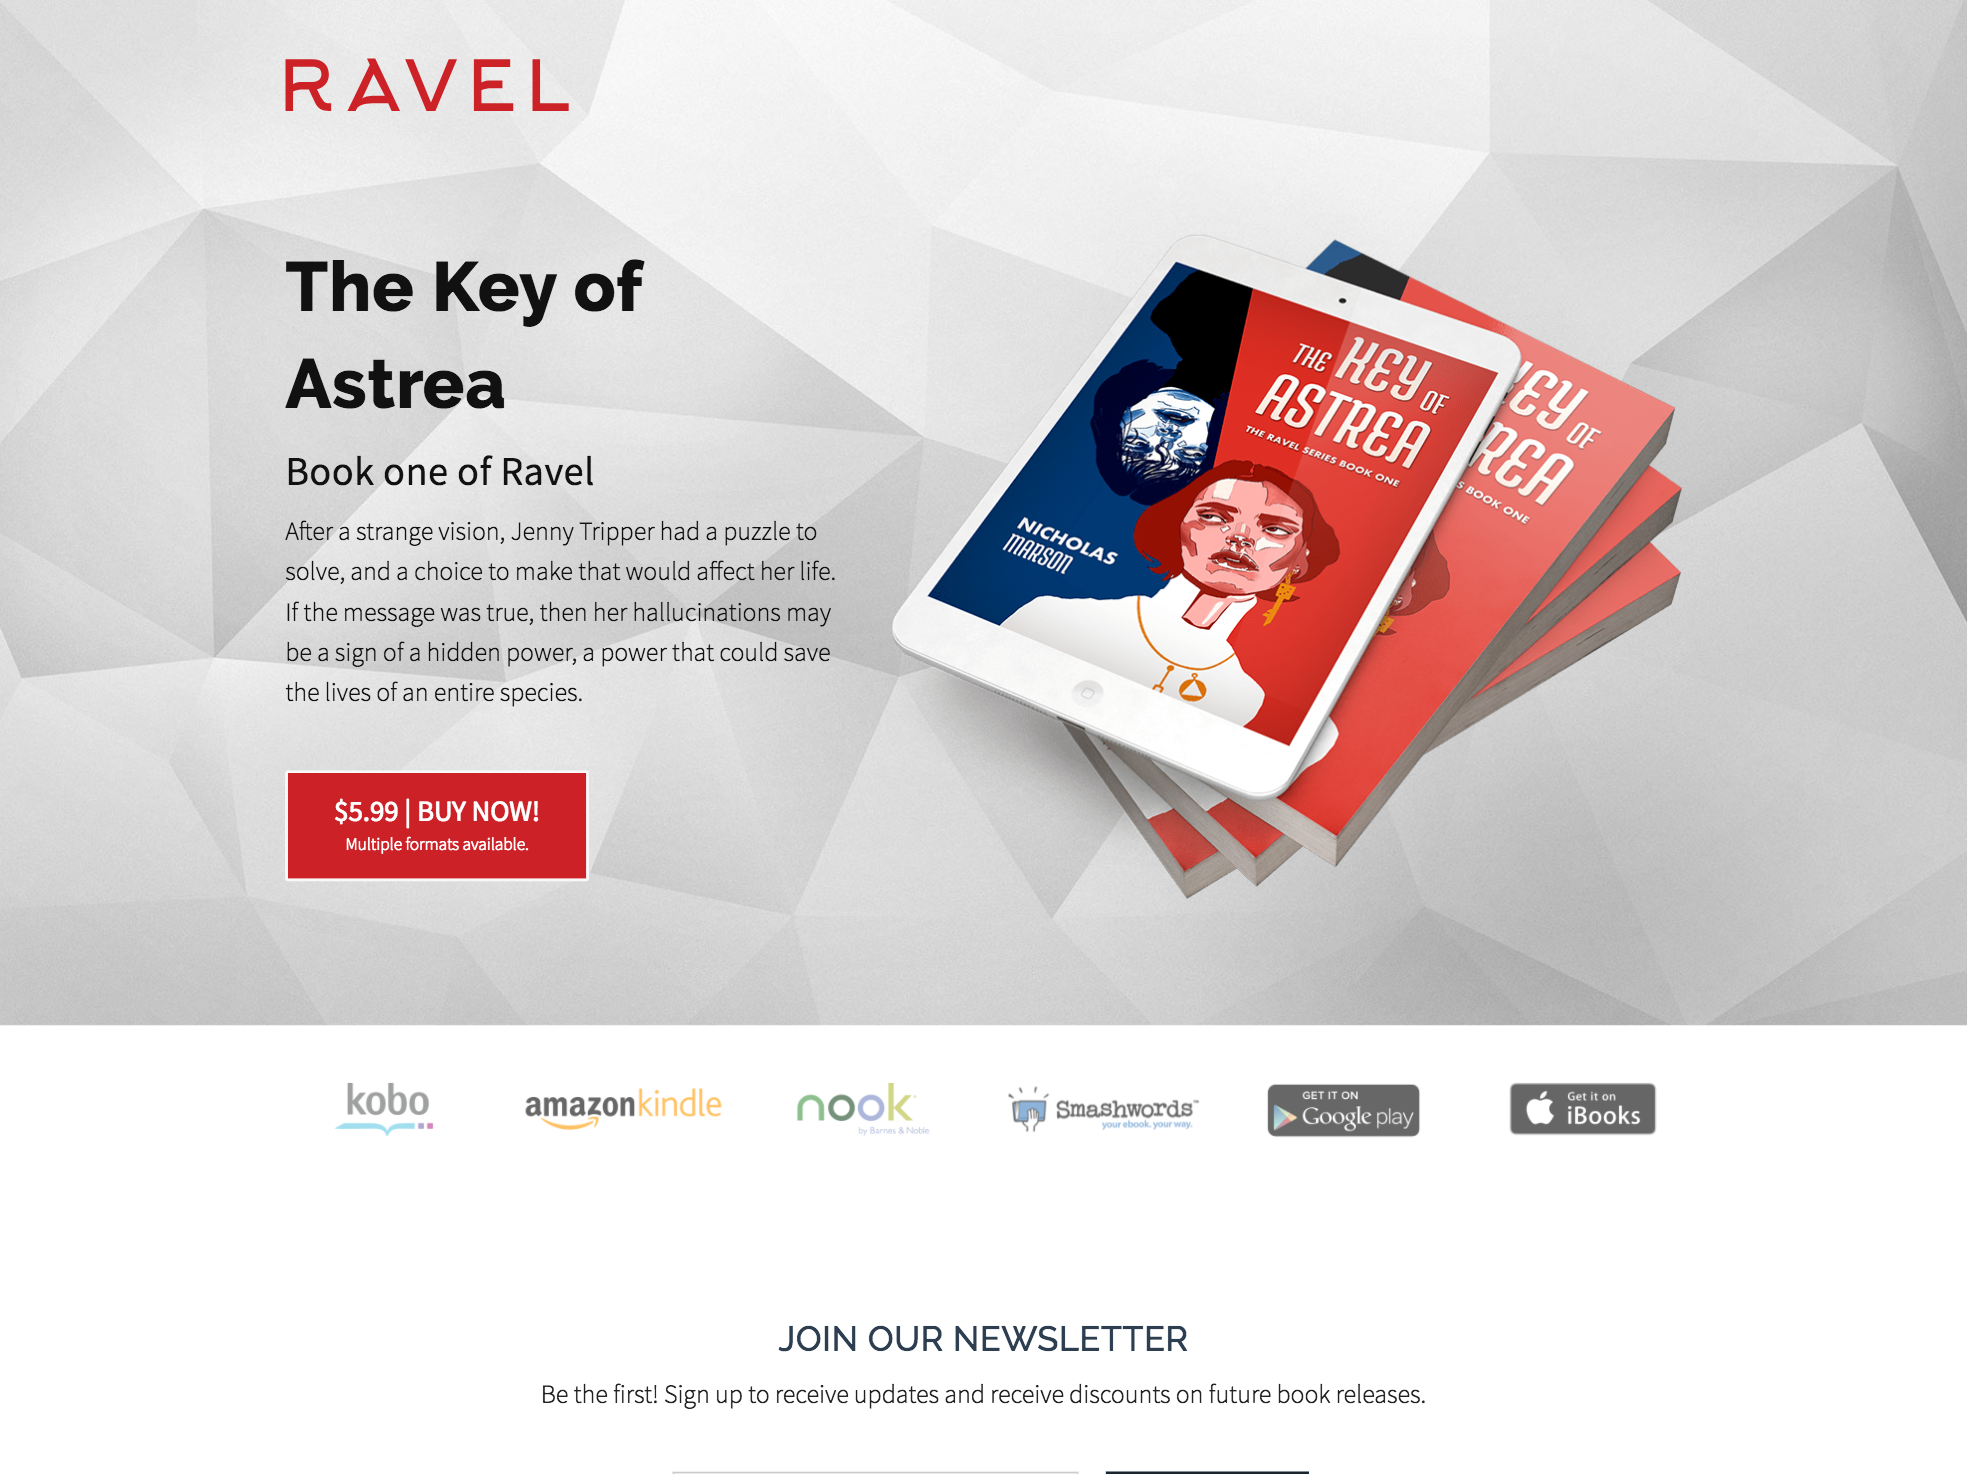 Ravel - The Key of Astrea home page